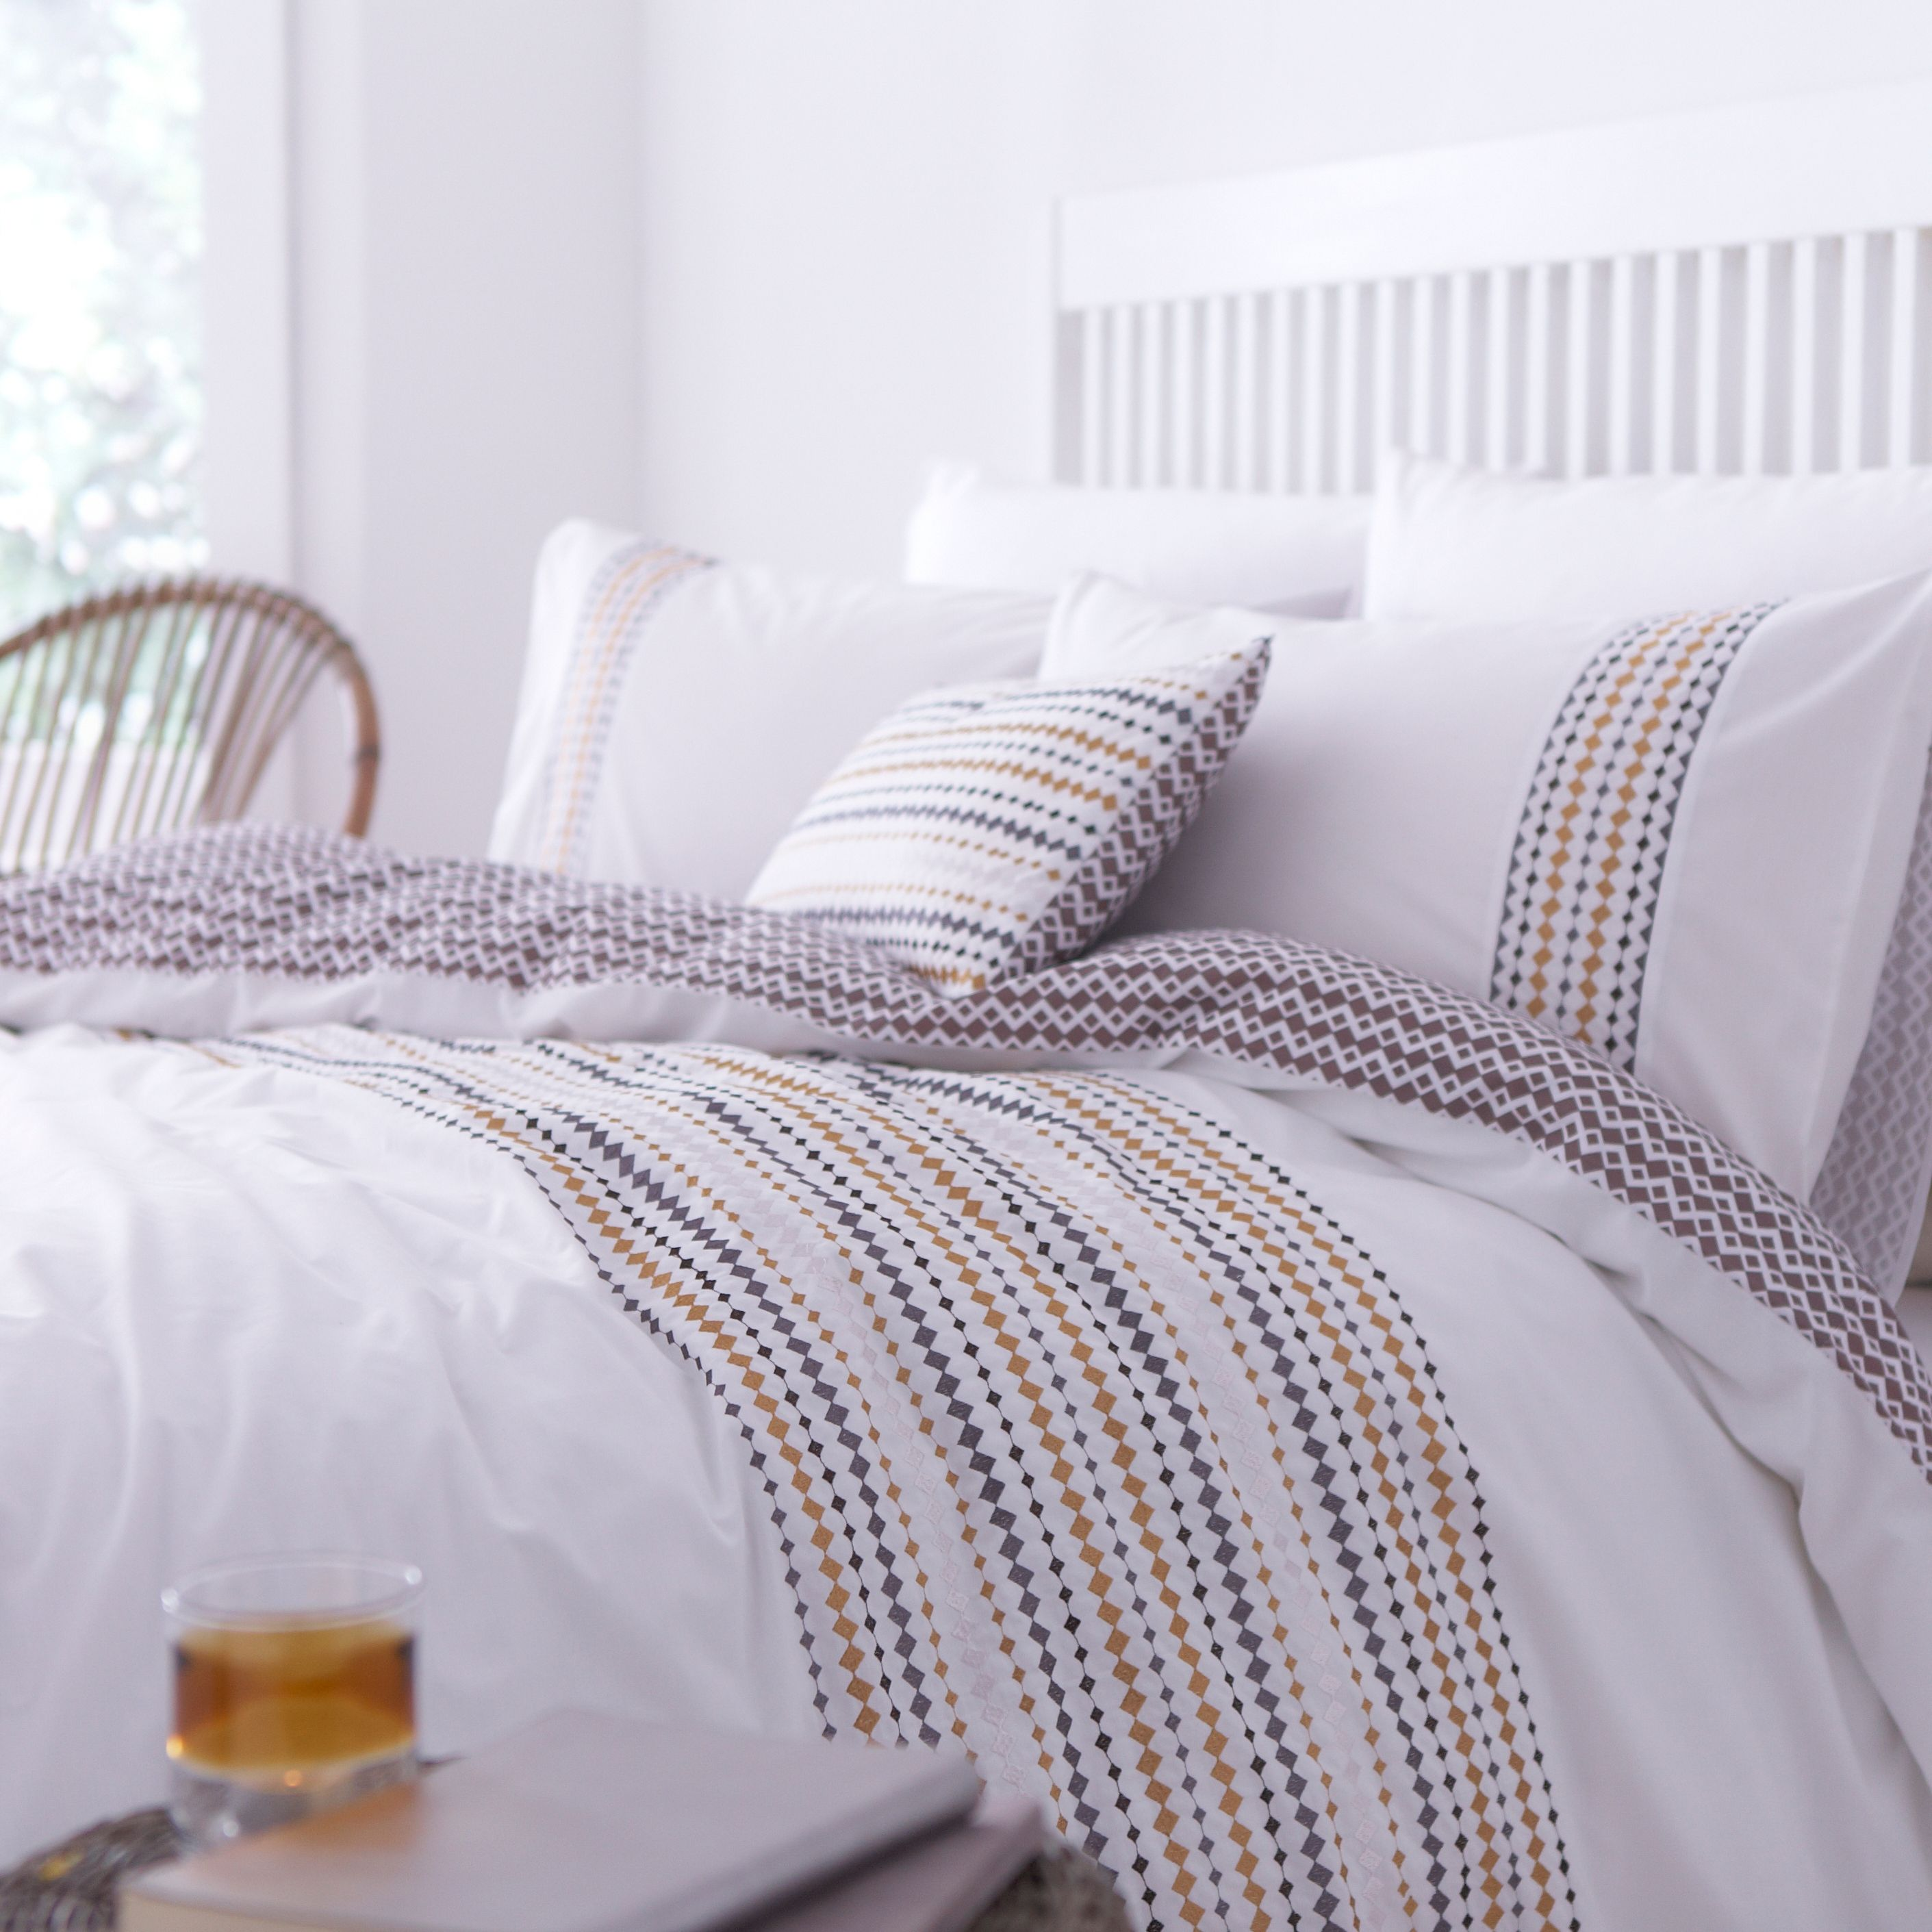 Tribal Luxe Bed Linen Range